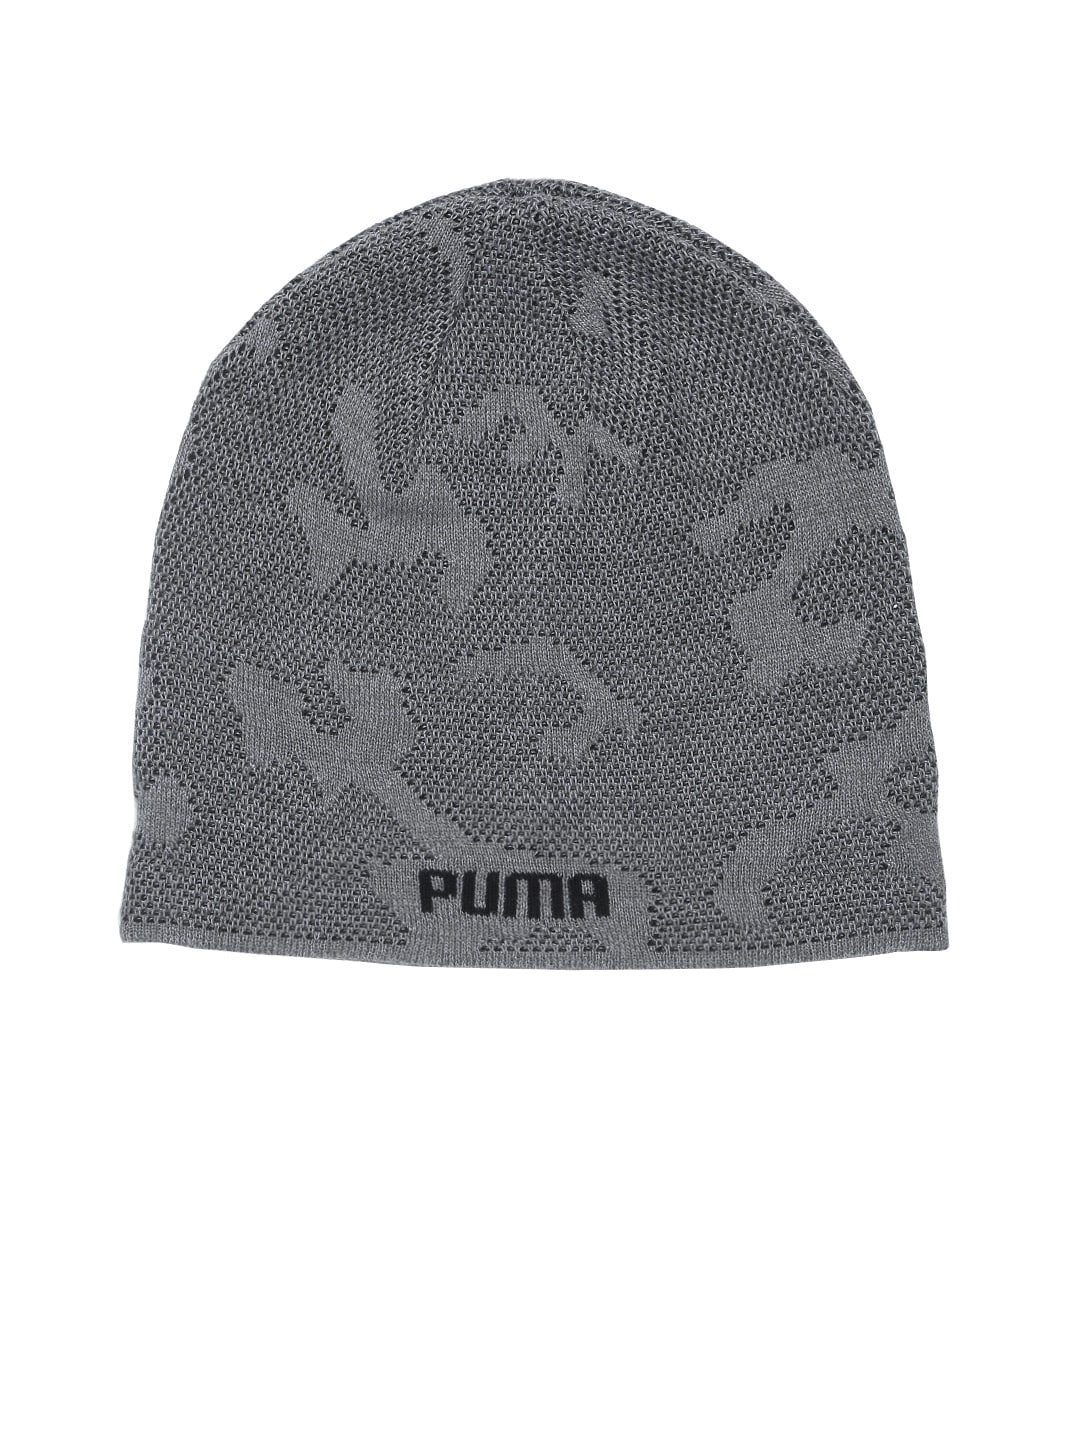 Puma Caps - Buy Puma Caps Online in India cab1bfb596d